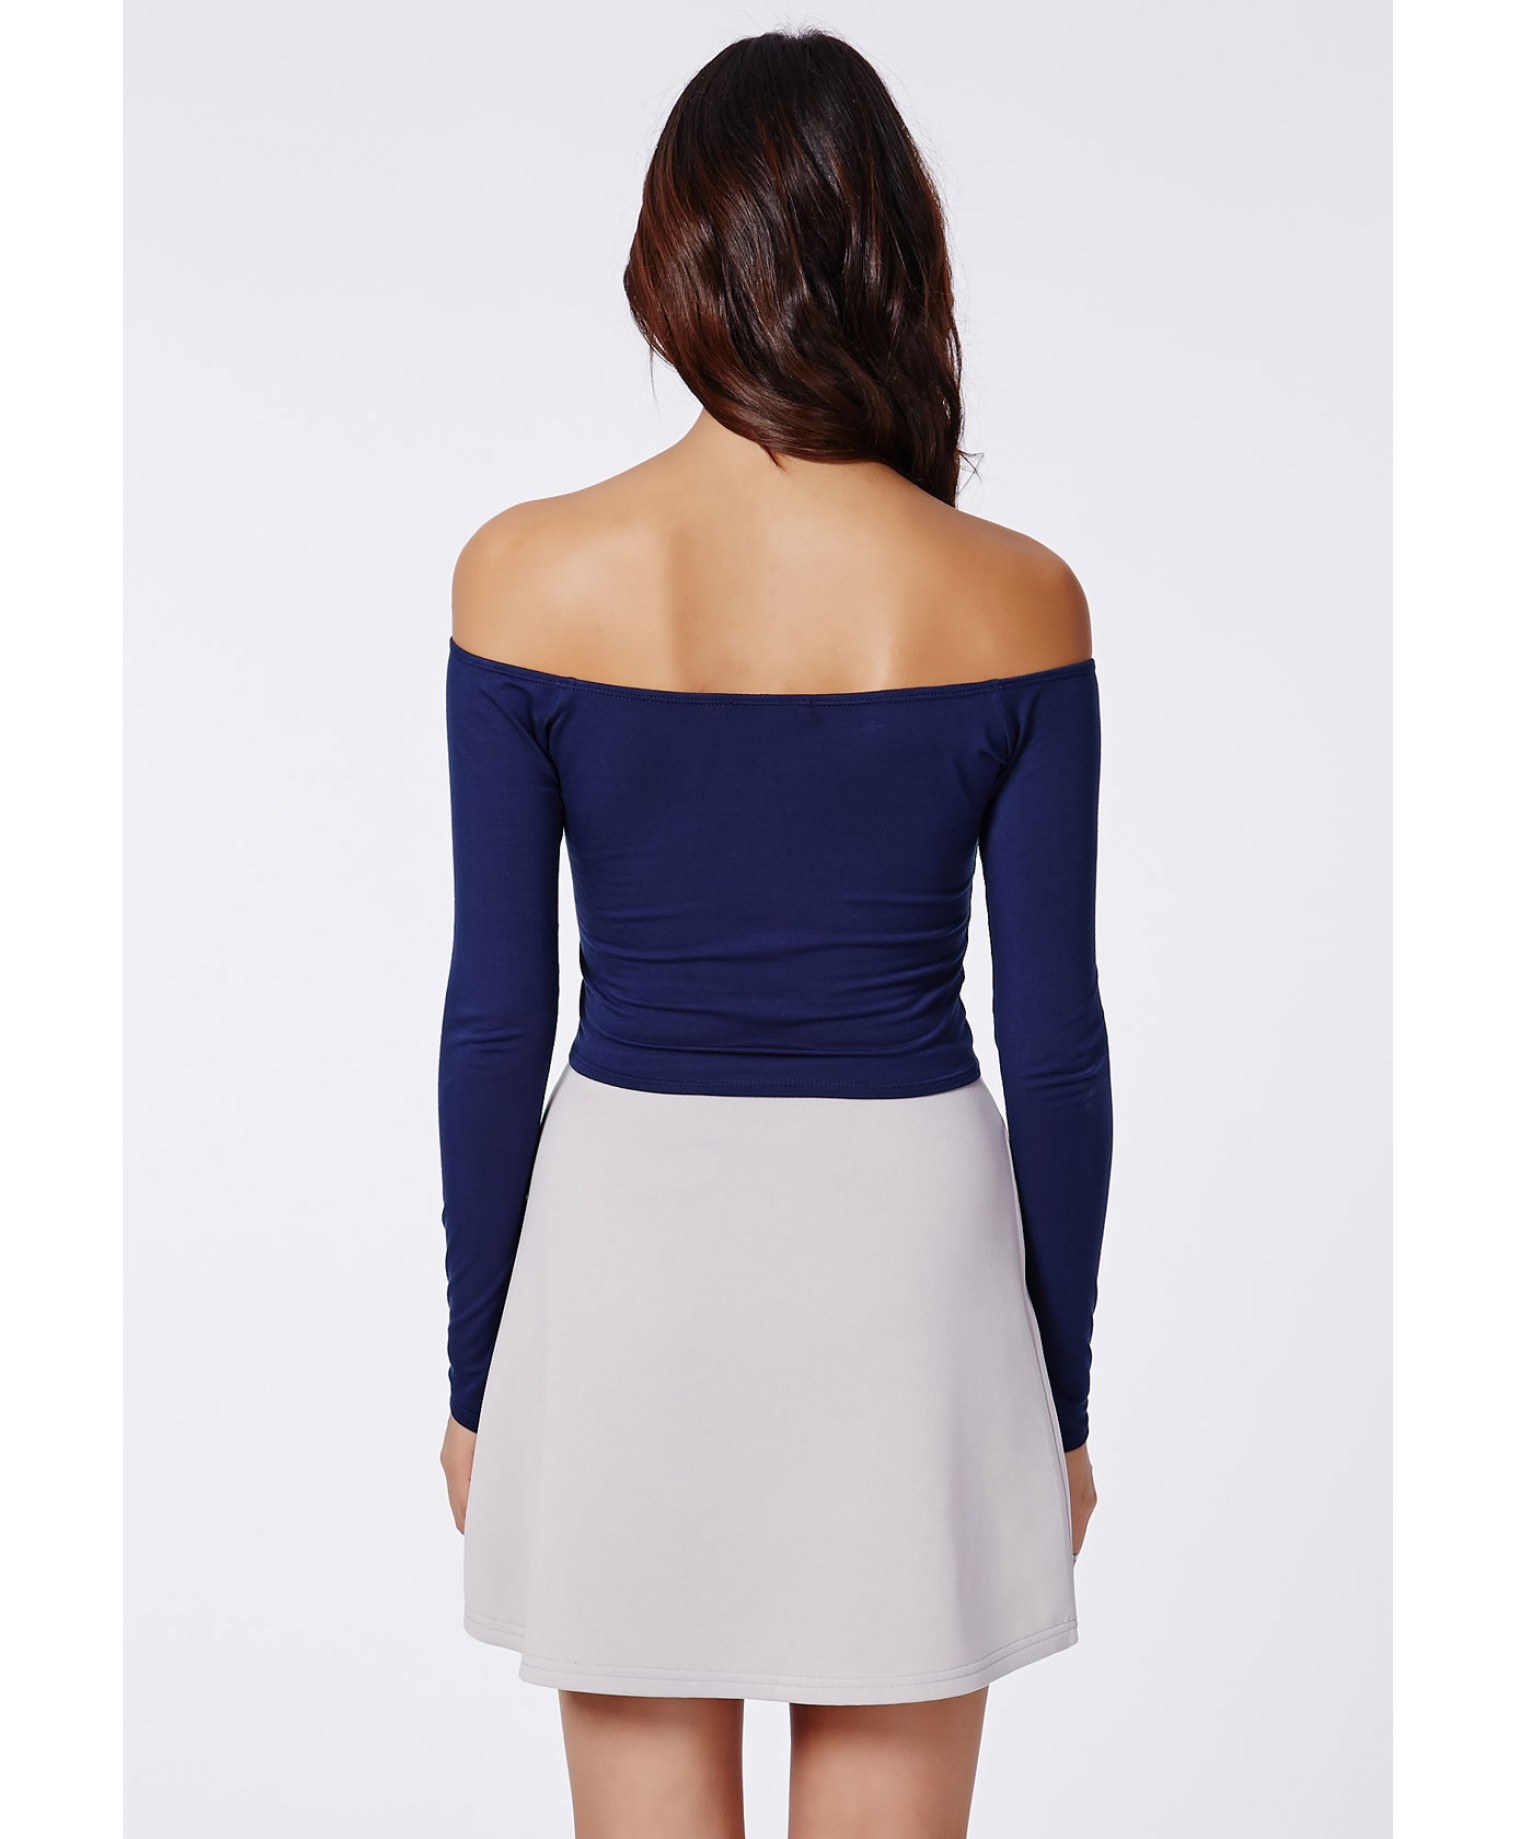 c76f6e991454d Lyst - Missguided Carrisa Long Sleeve Jersey Bardot Crop Top Navy in ...